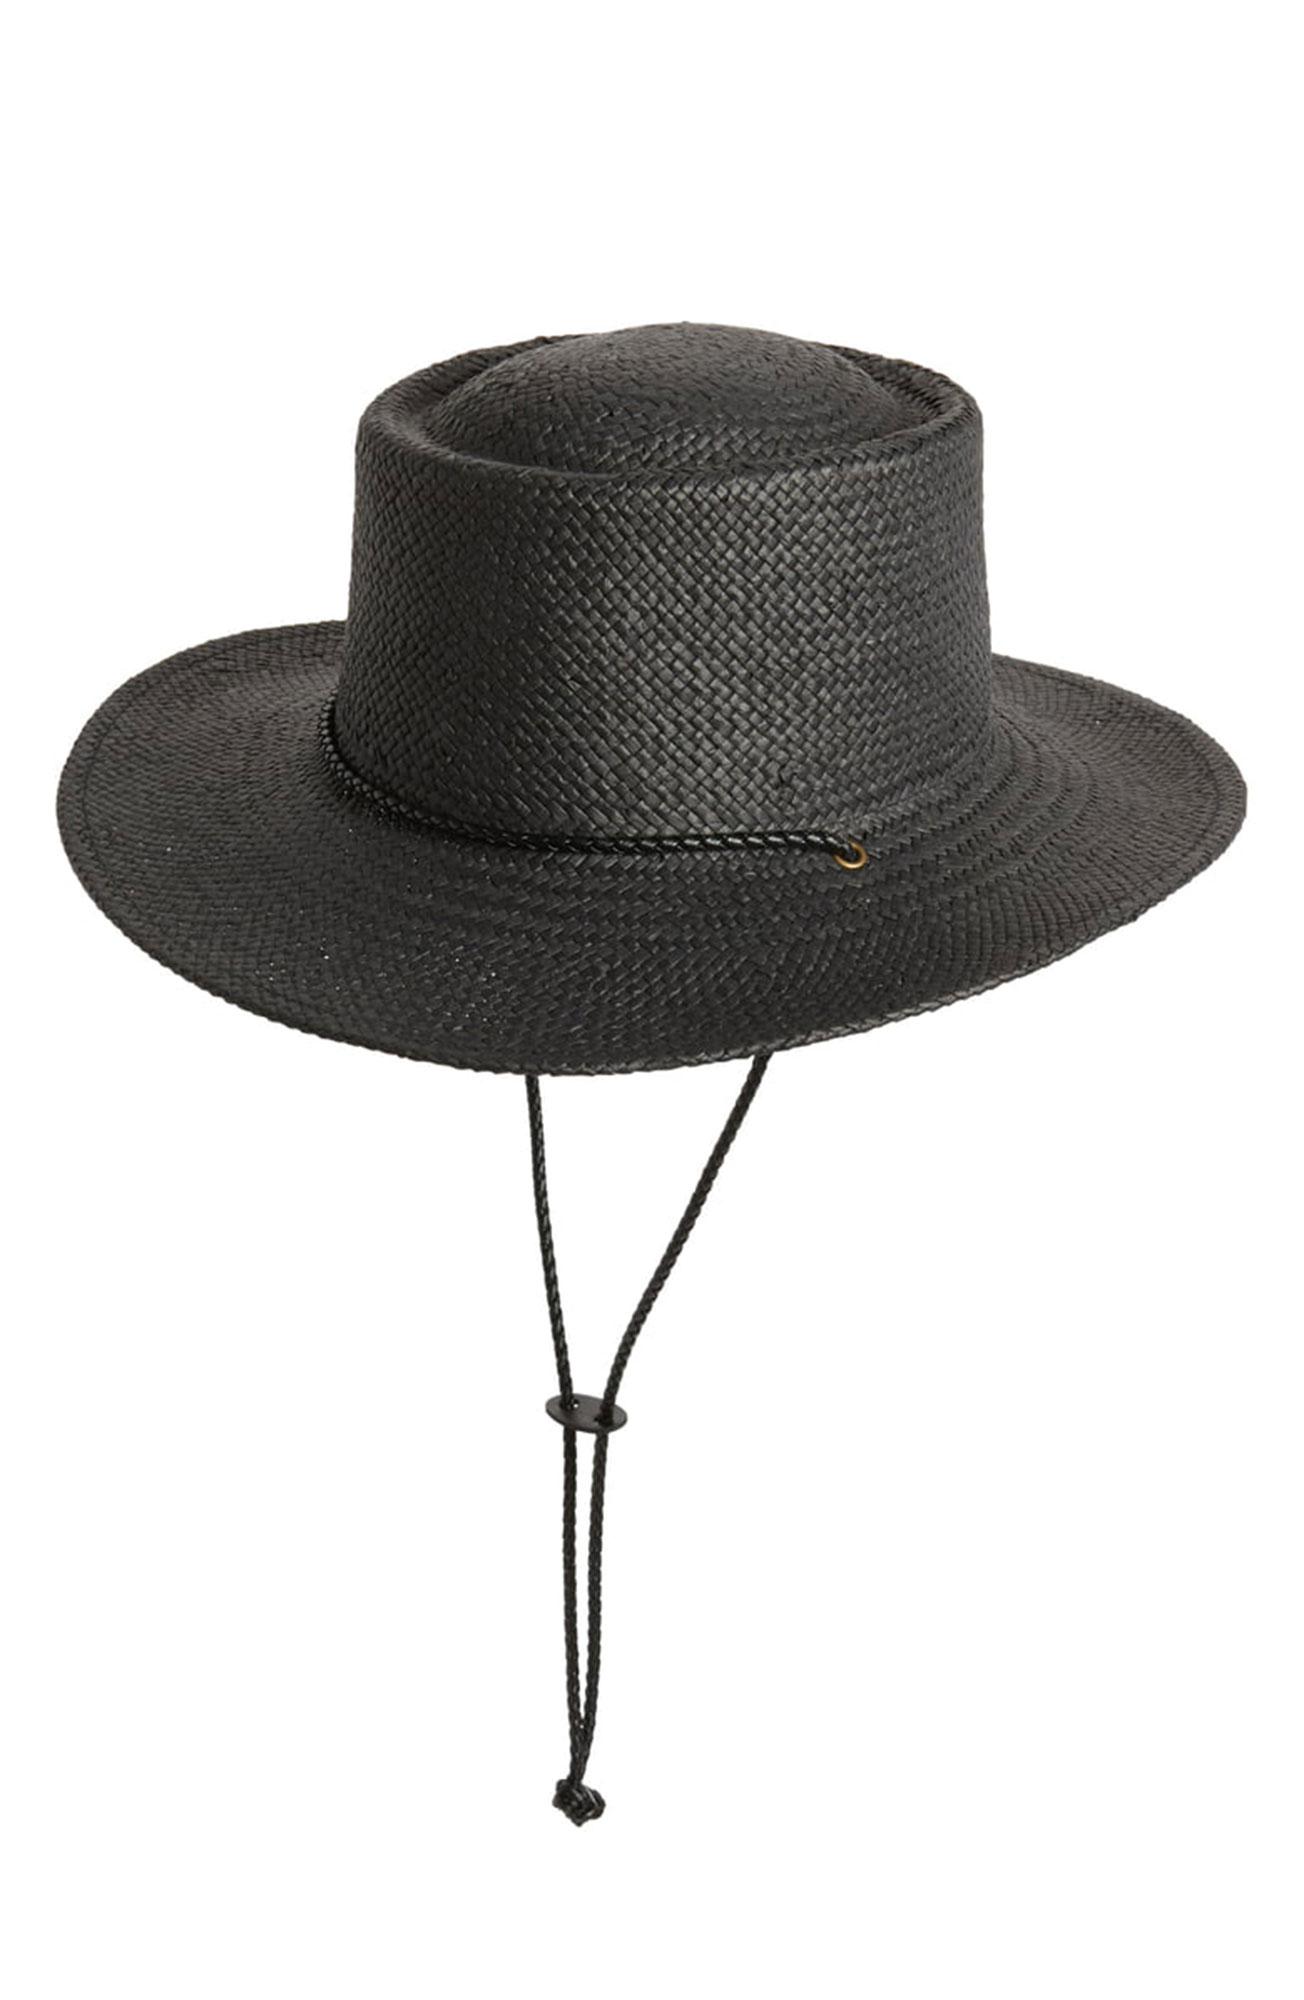 7 Black Panama Hats Inspired by Gigi Hadid¹s Œ90s Wedding Style - A braided drawstring cord adds a bit of country flair to this woven boater hat. $29, nordstrom.com